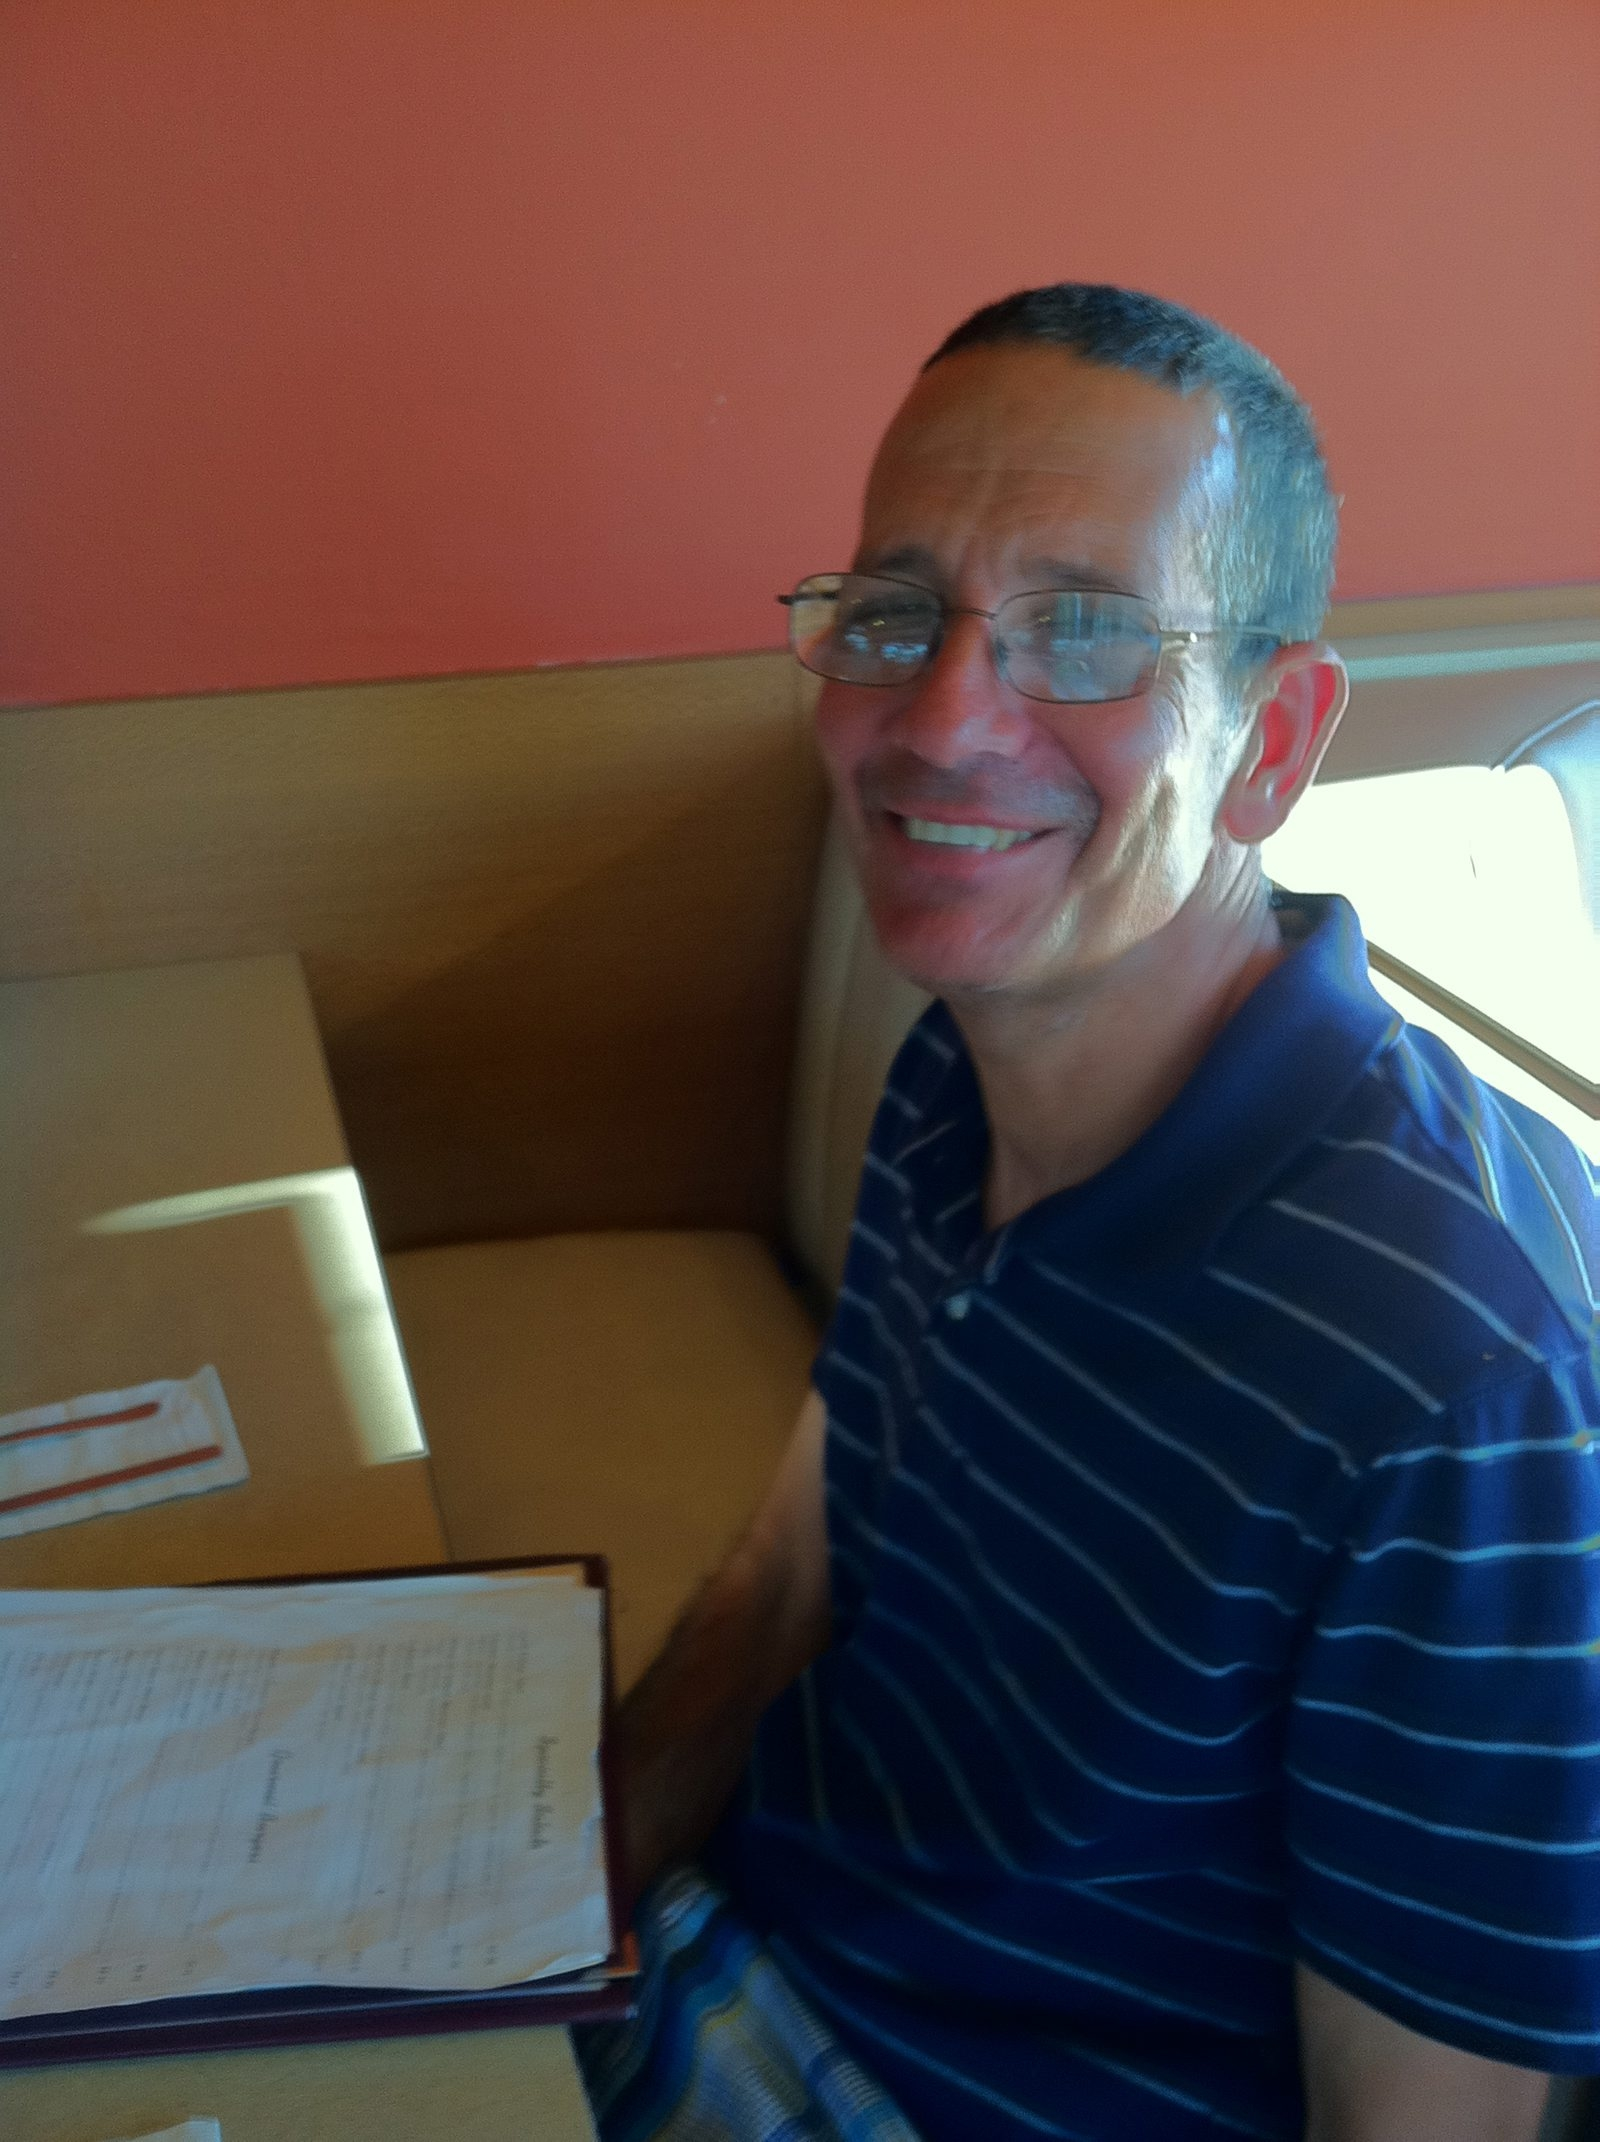 Marc Weinfeld, savant with gift for numbers, rode bus from Elma each day, aglow with friendship.